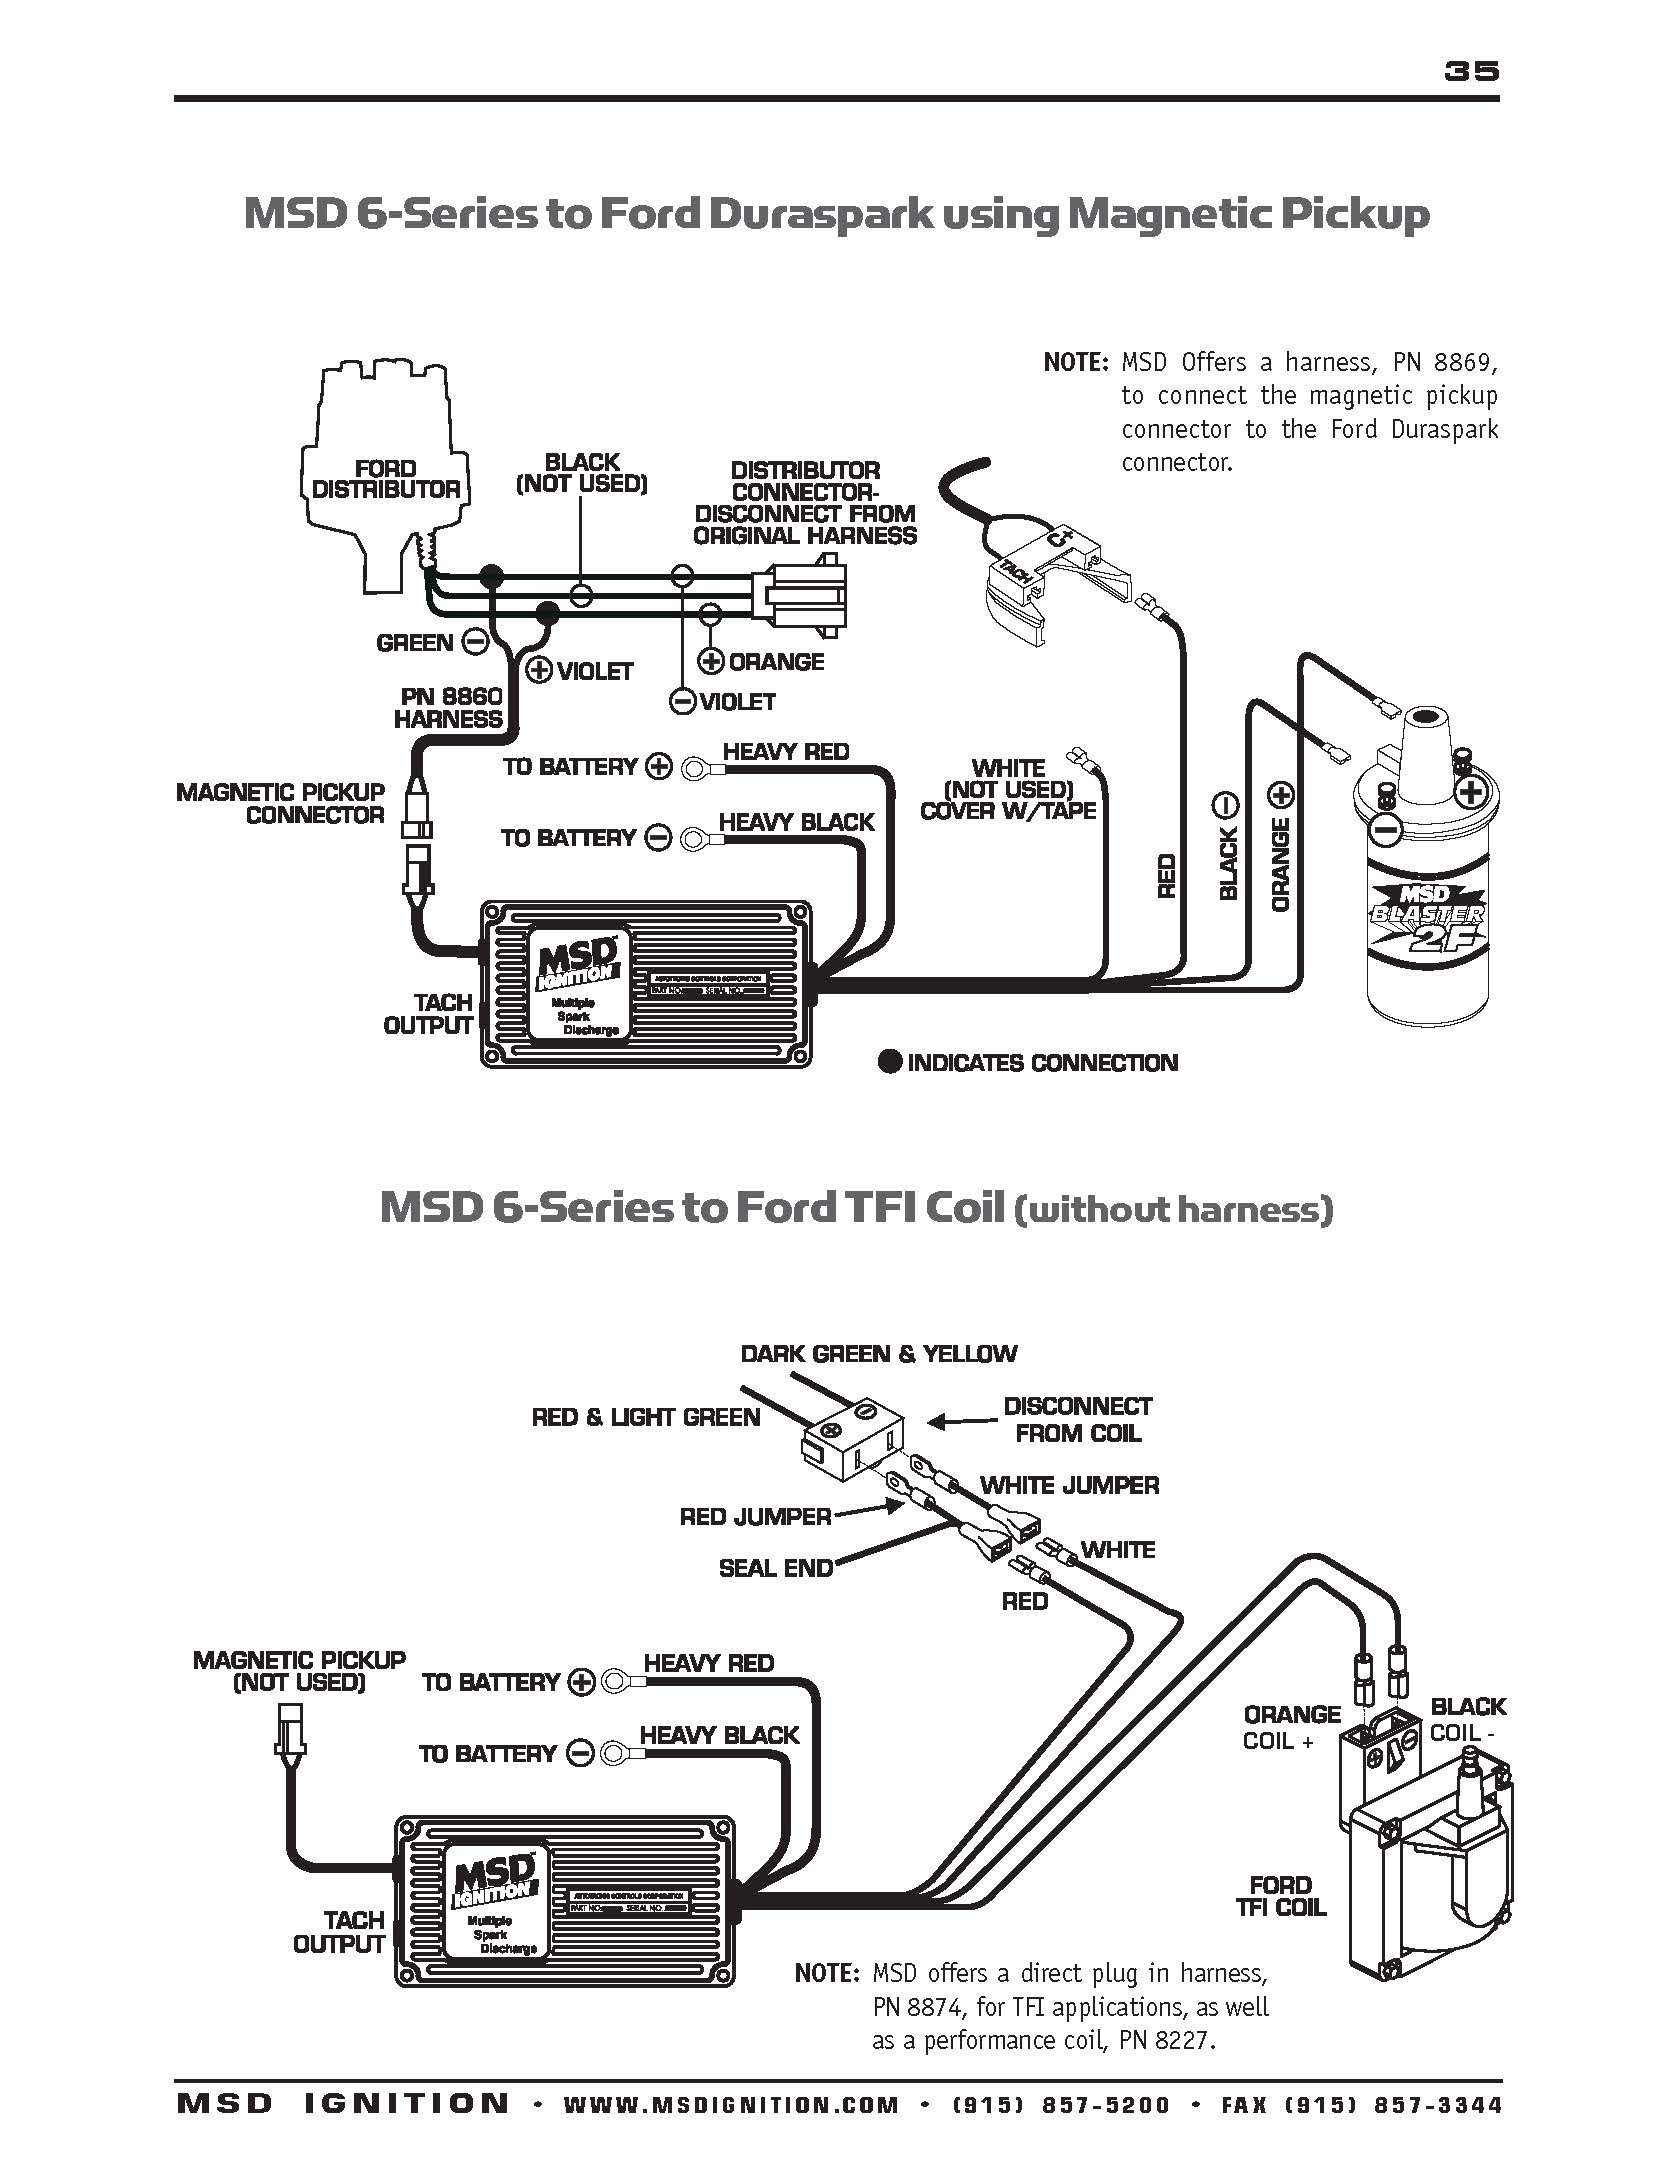 Ford Msd Ignition Wiring Diagram 6 - Data Wiring Diagram Today - Msd 6Al Wiring Diagram Ford